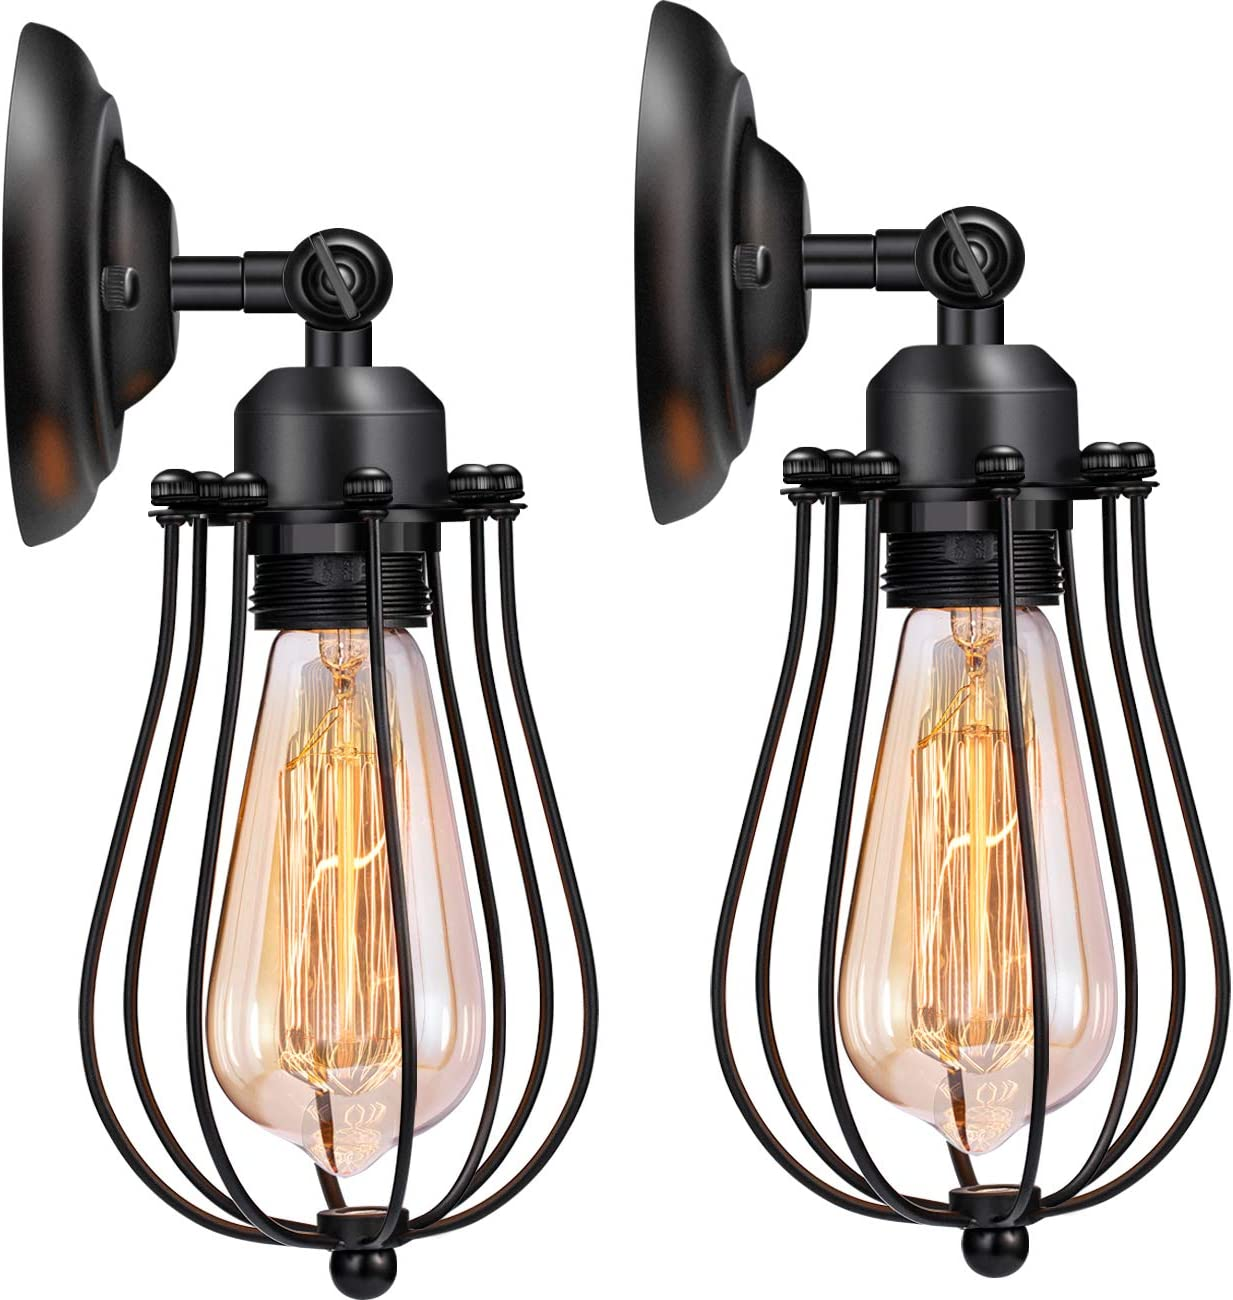 Wire Cage Wall Sconce Licperron Adjustable Industrial Wall Sconce 2 Pack Vintage Style Bedroom Garage Porch Mirror - -